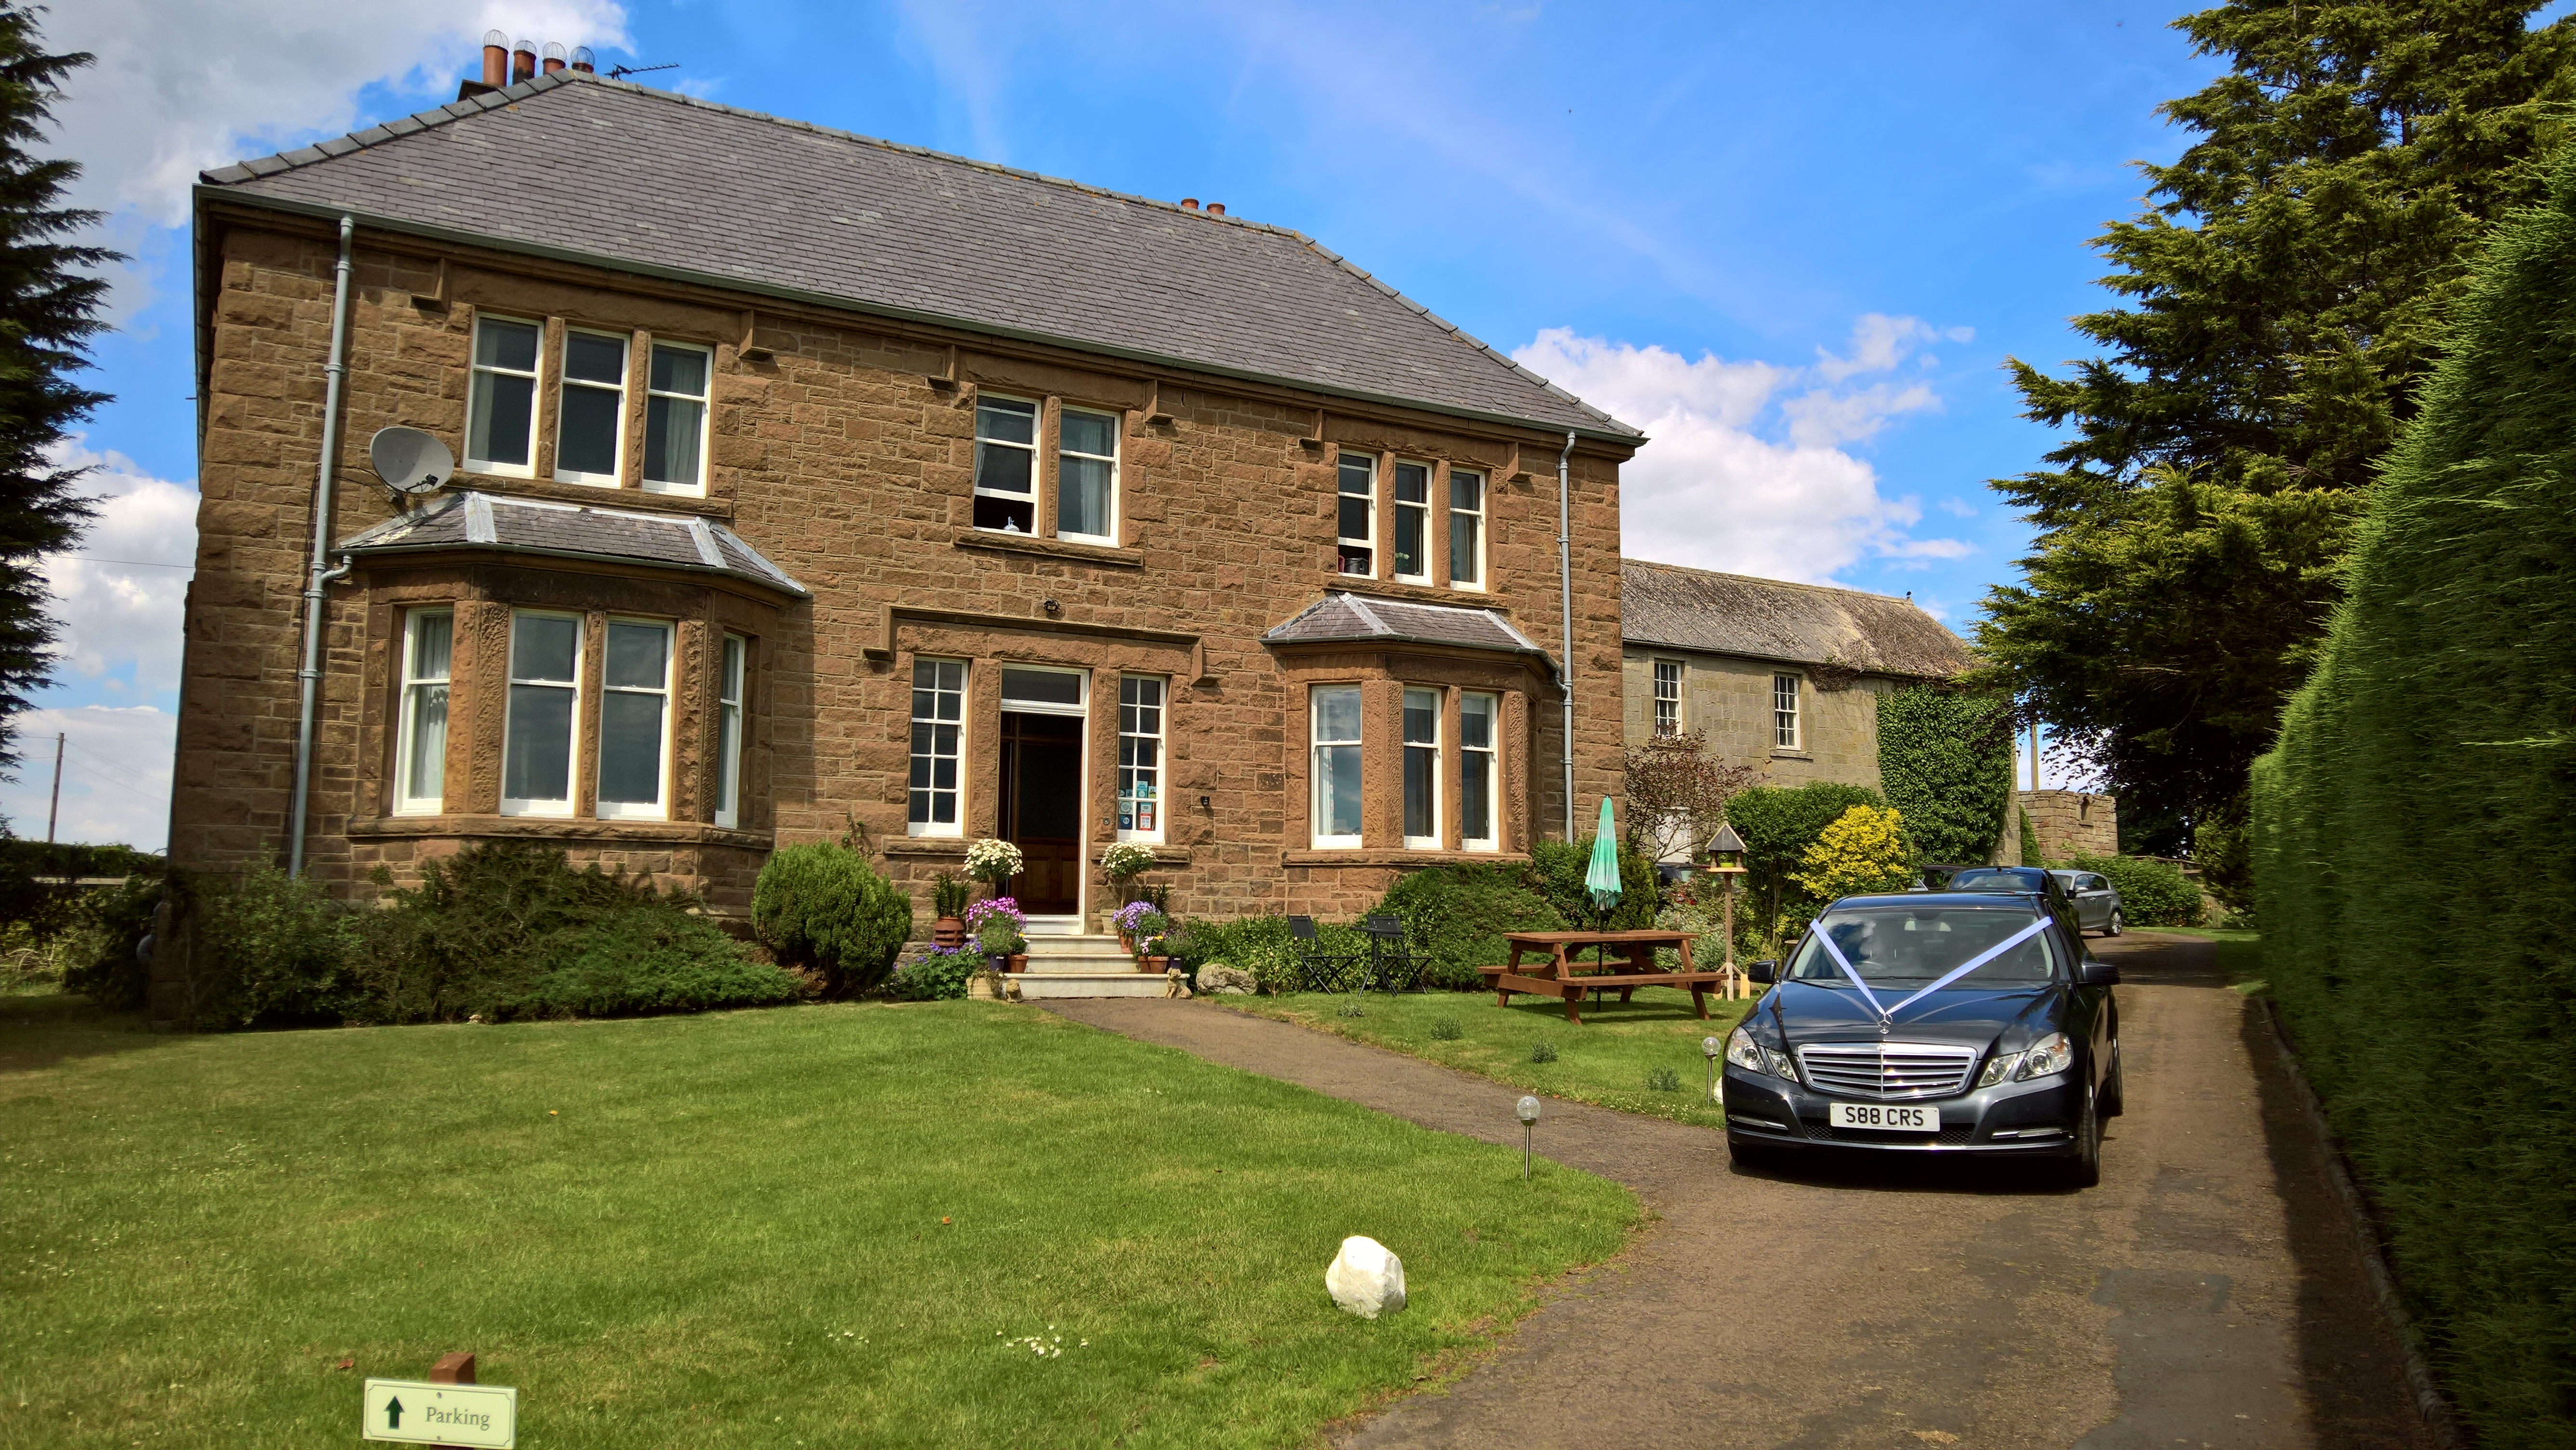 Hay Farm Bed and Breakfast in North Northumberland